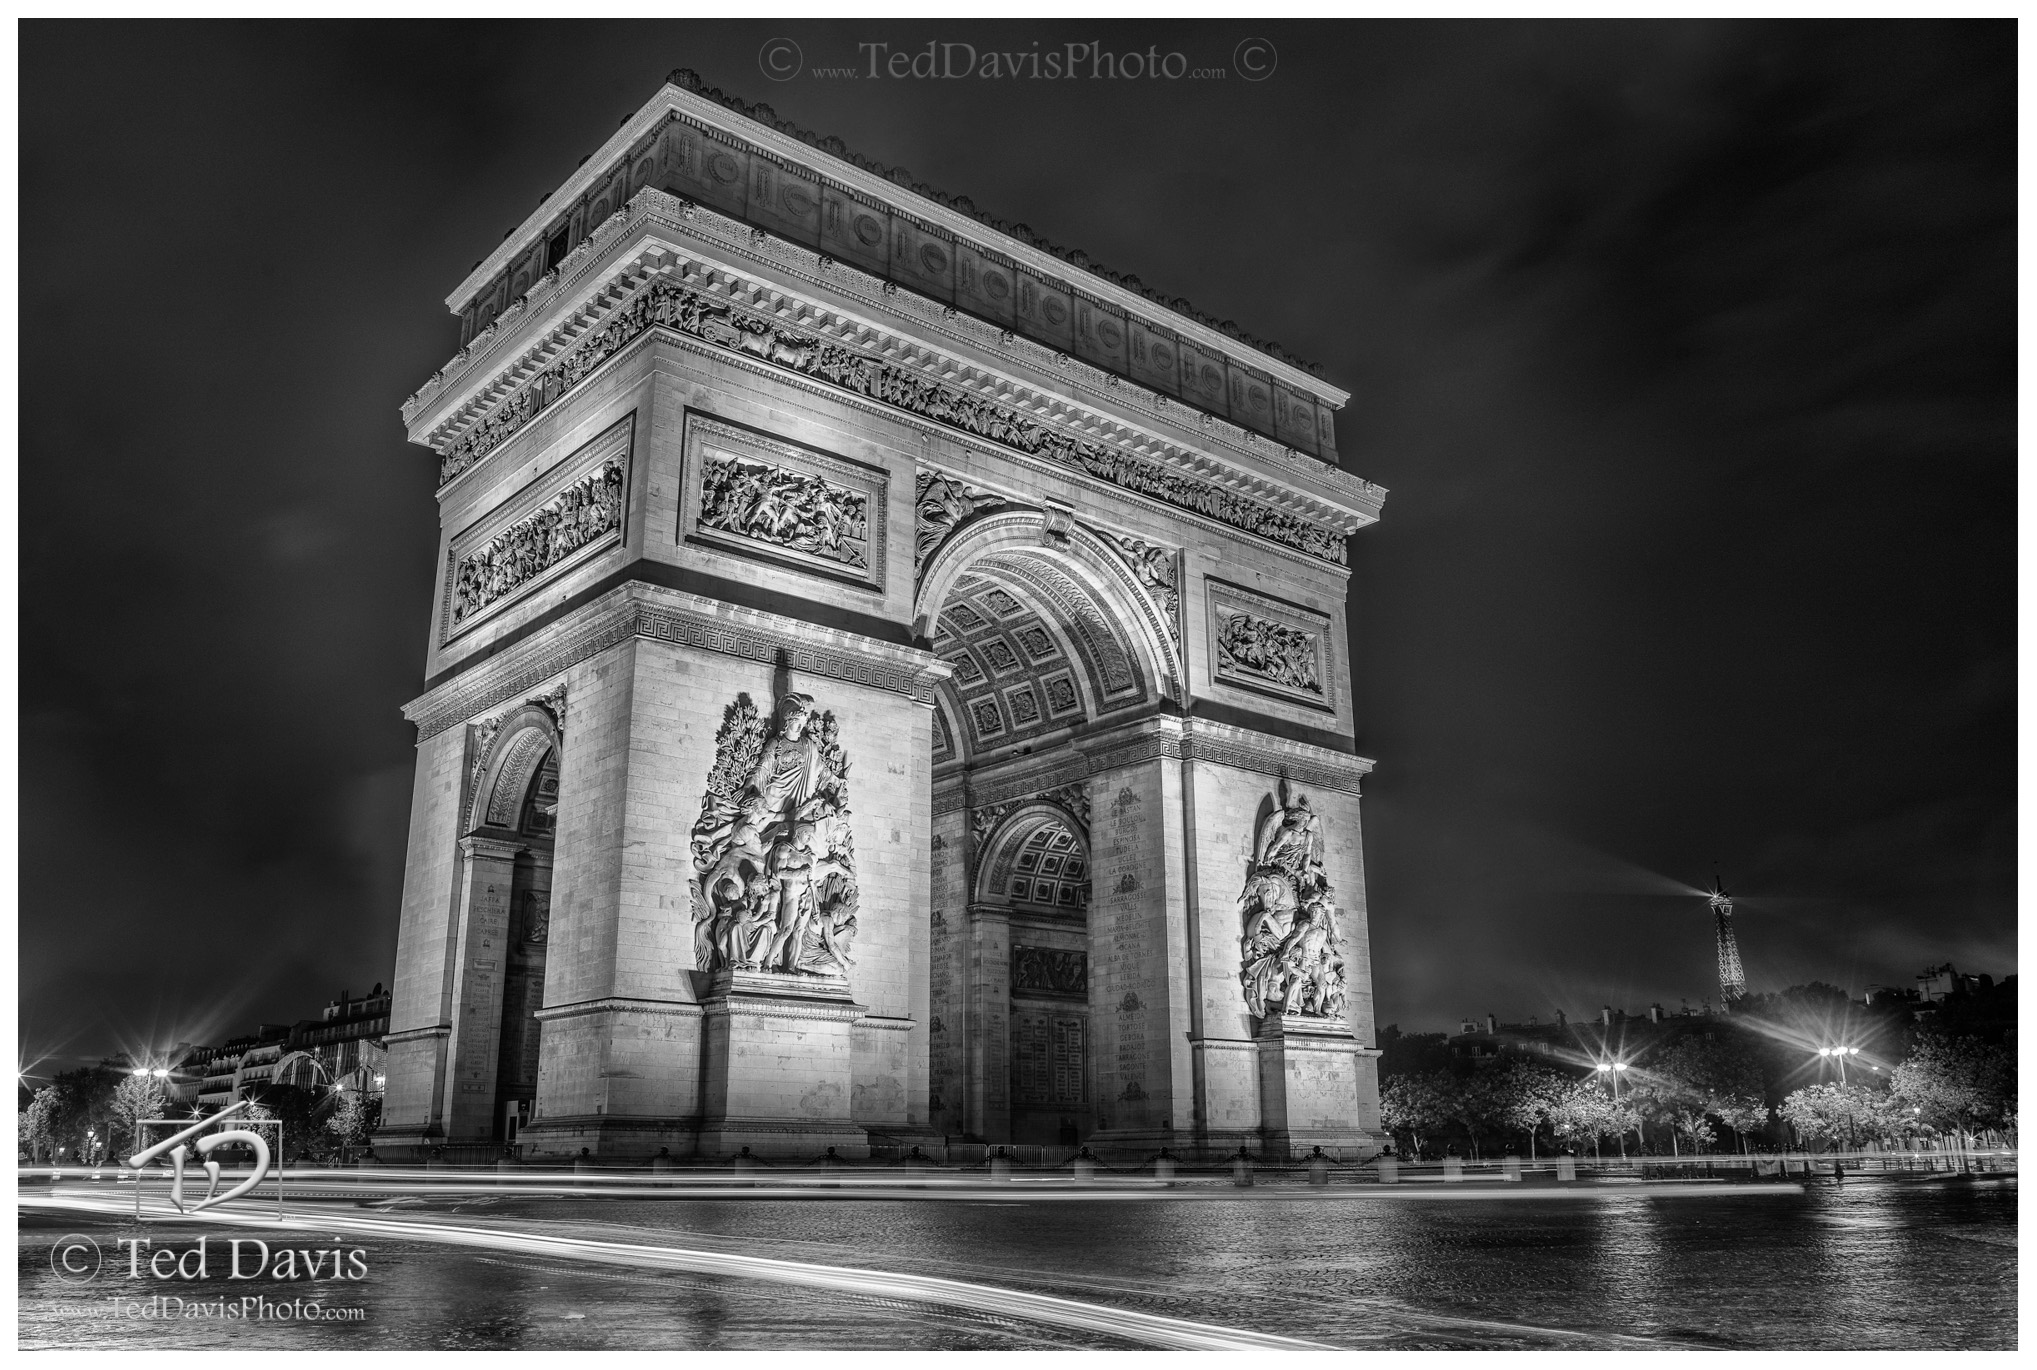 Arc, Triomphe, Paris, France, errie, sunset, rain, Champs, Elysees, monument, Revolution, Napoleonic, Napoleon, Trimphal, timeless, black and white, long exposure, photo